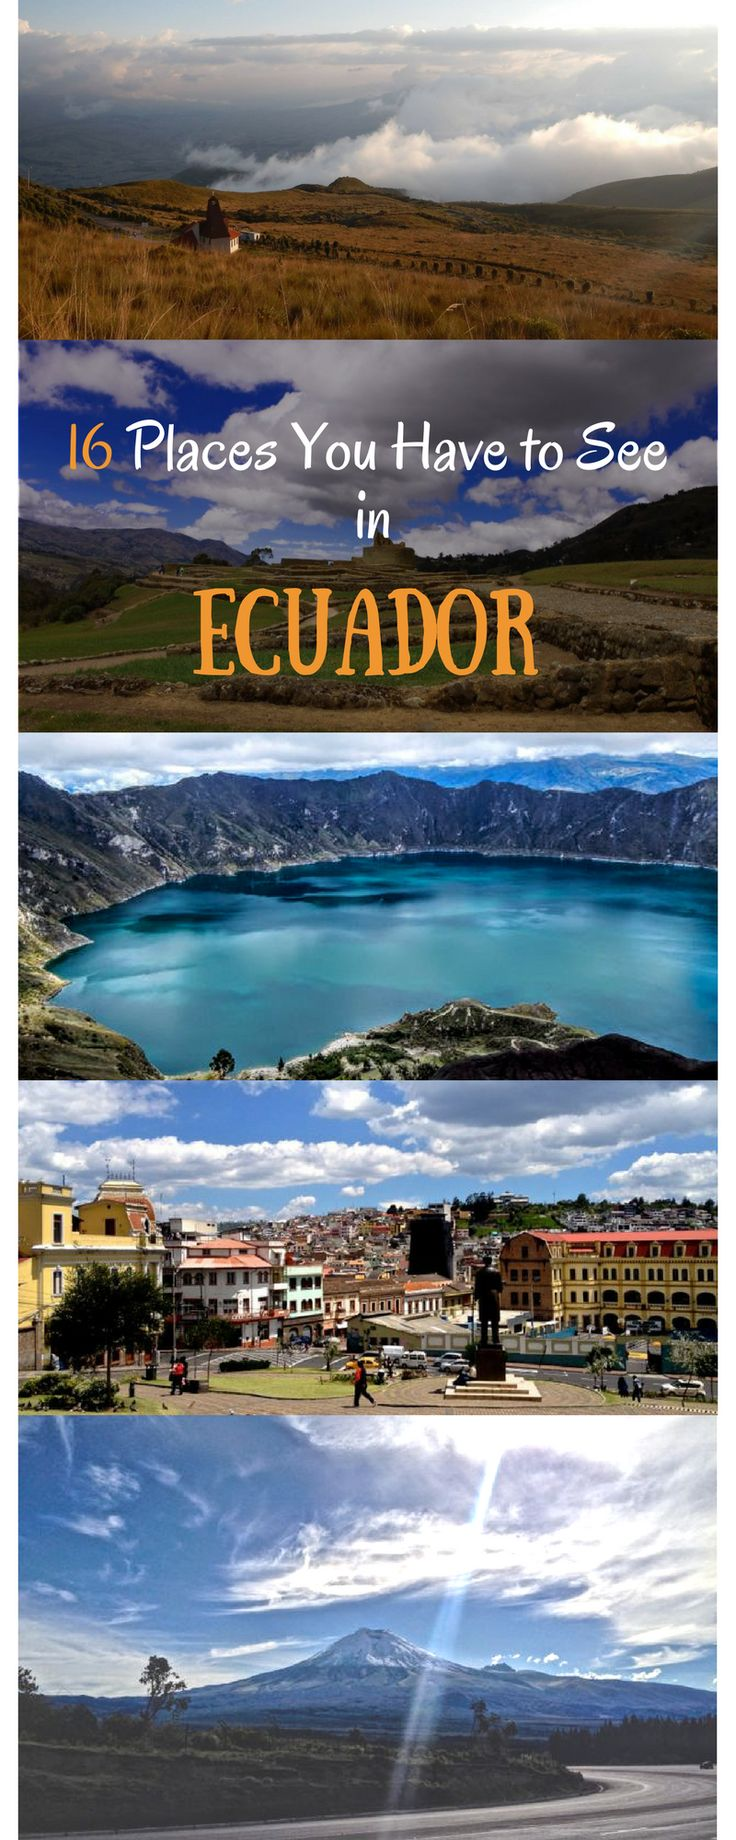 You want to travel to Ecuador? Here are 16 places you shouldn`t miss out on. Ecuador is simply amazing with it`s beautiful colonial cities like Quito, incredible national parks, beautiful beaches, Jungle and stunning volcanos. Some Must-See places are Quito, Laguna de Quilotoa, Volcano Cotopaxi, Yasuni National Park, Otavalo, the cloud forest of Mindo and many more #travel #ecuador #southamerica #quito #otovalo #montanita #mindo #guayaquil #quilotoa #banos Thanks a million for repinning